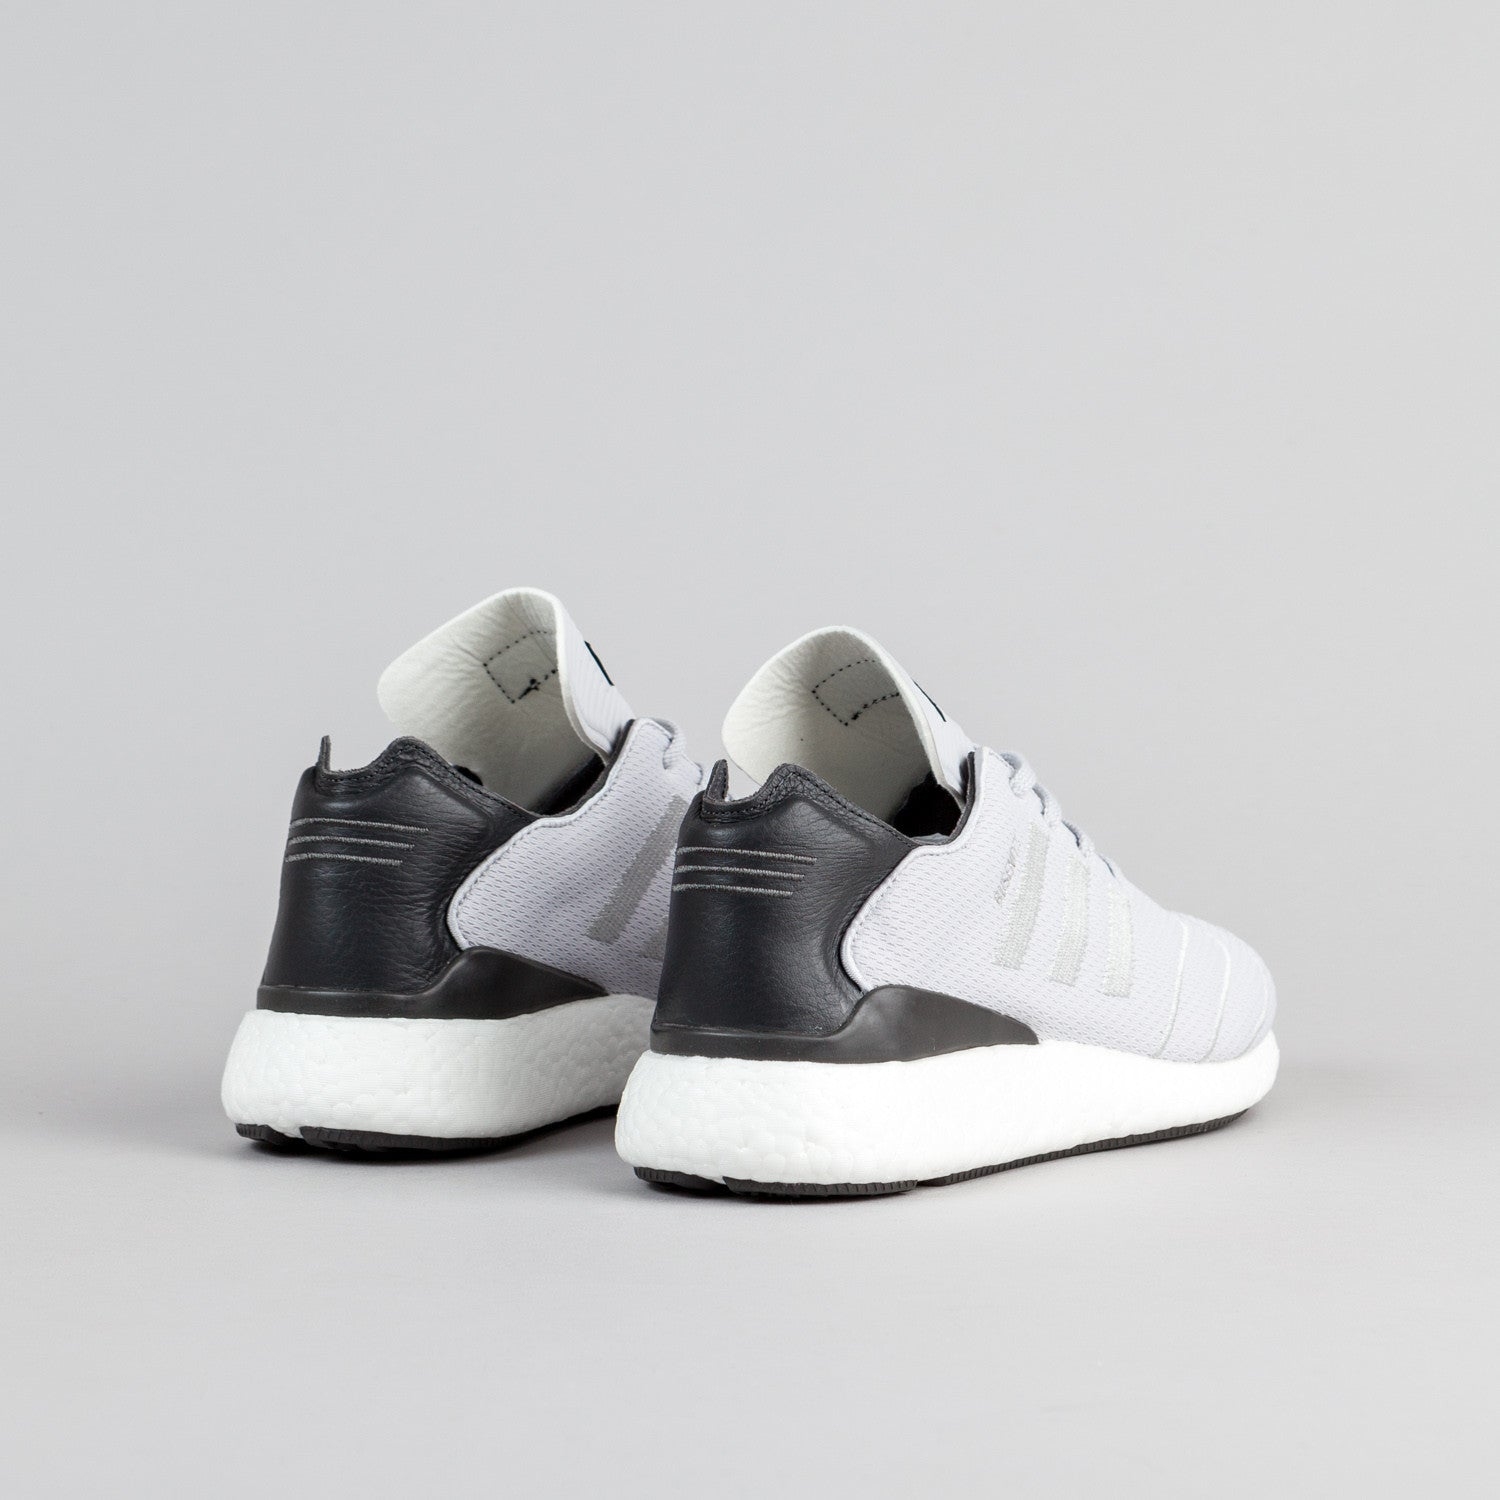 998f8a96c7acf Cheap Adidas Eqt Support Clearance Sale Adizero Sub2